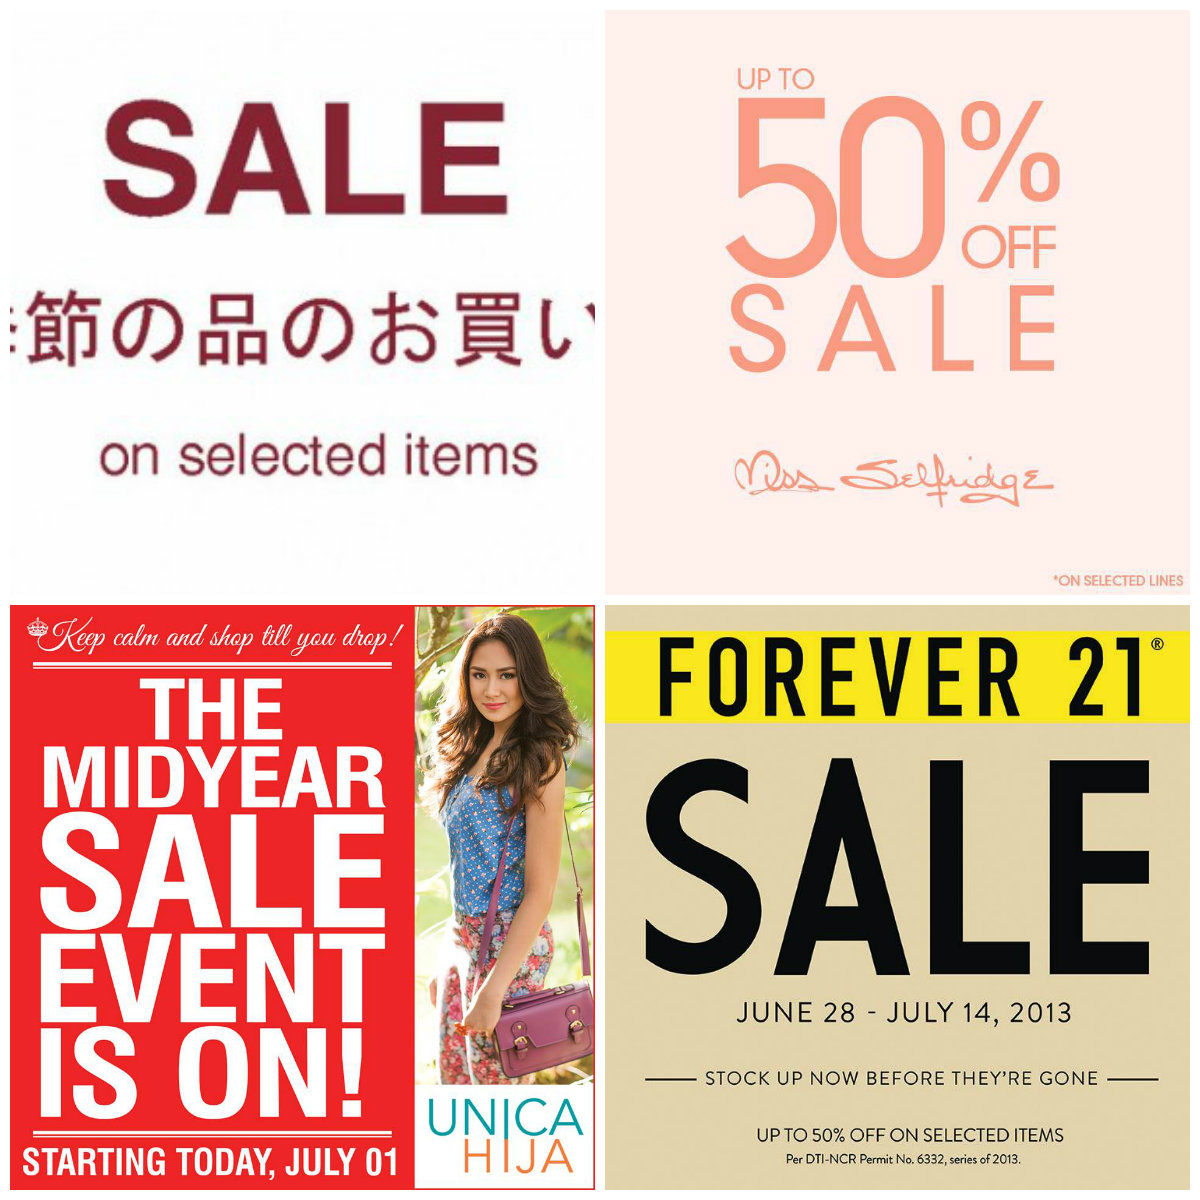 91aca313c7 To make it easier for my dear shopaholic friends and readers (if there s  any) here s a compiled list shops on sale that you could and should check  out  P